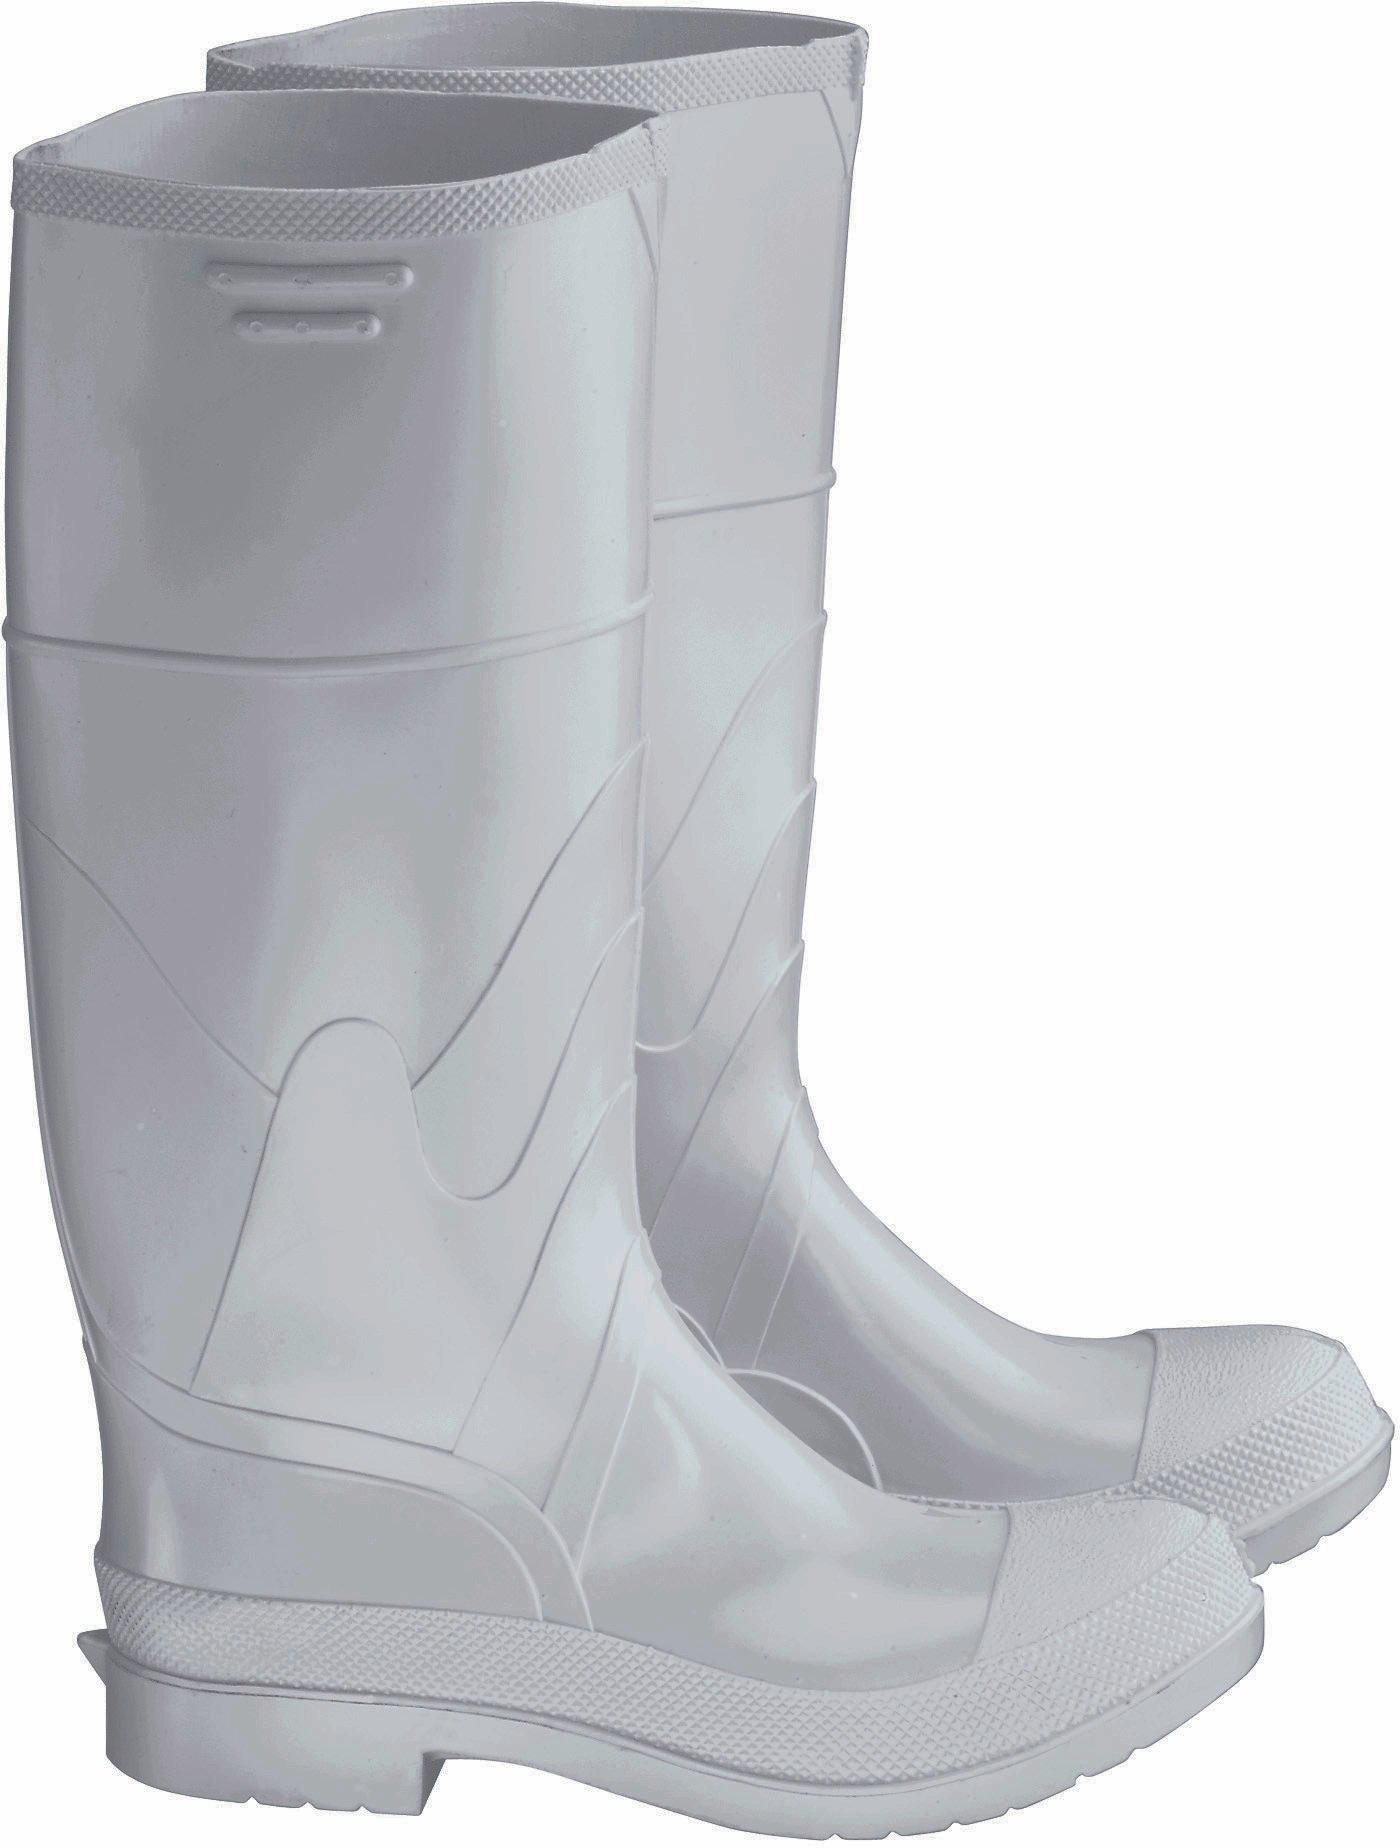 ONGUARD 81011 PVC Men's Plain Toe Knee Boots with Safety-Lok Outsole, 16'' Height, White, Size 8